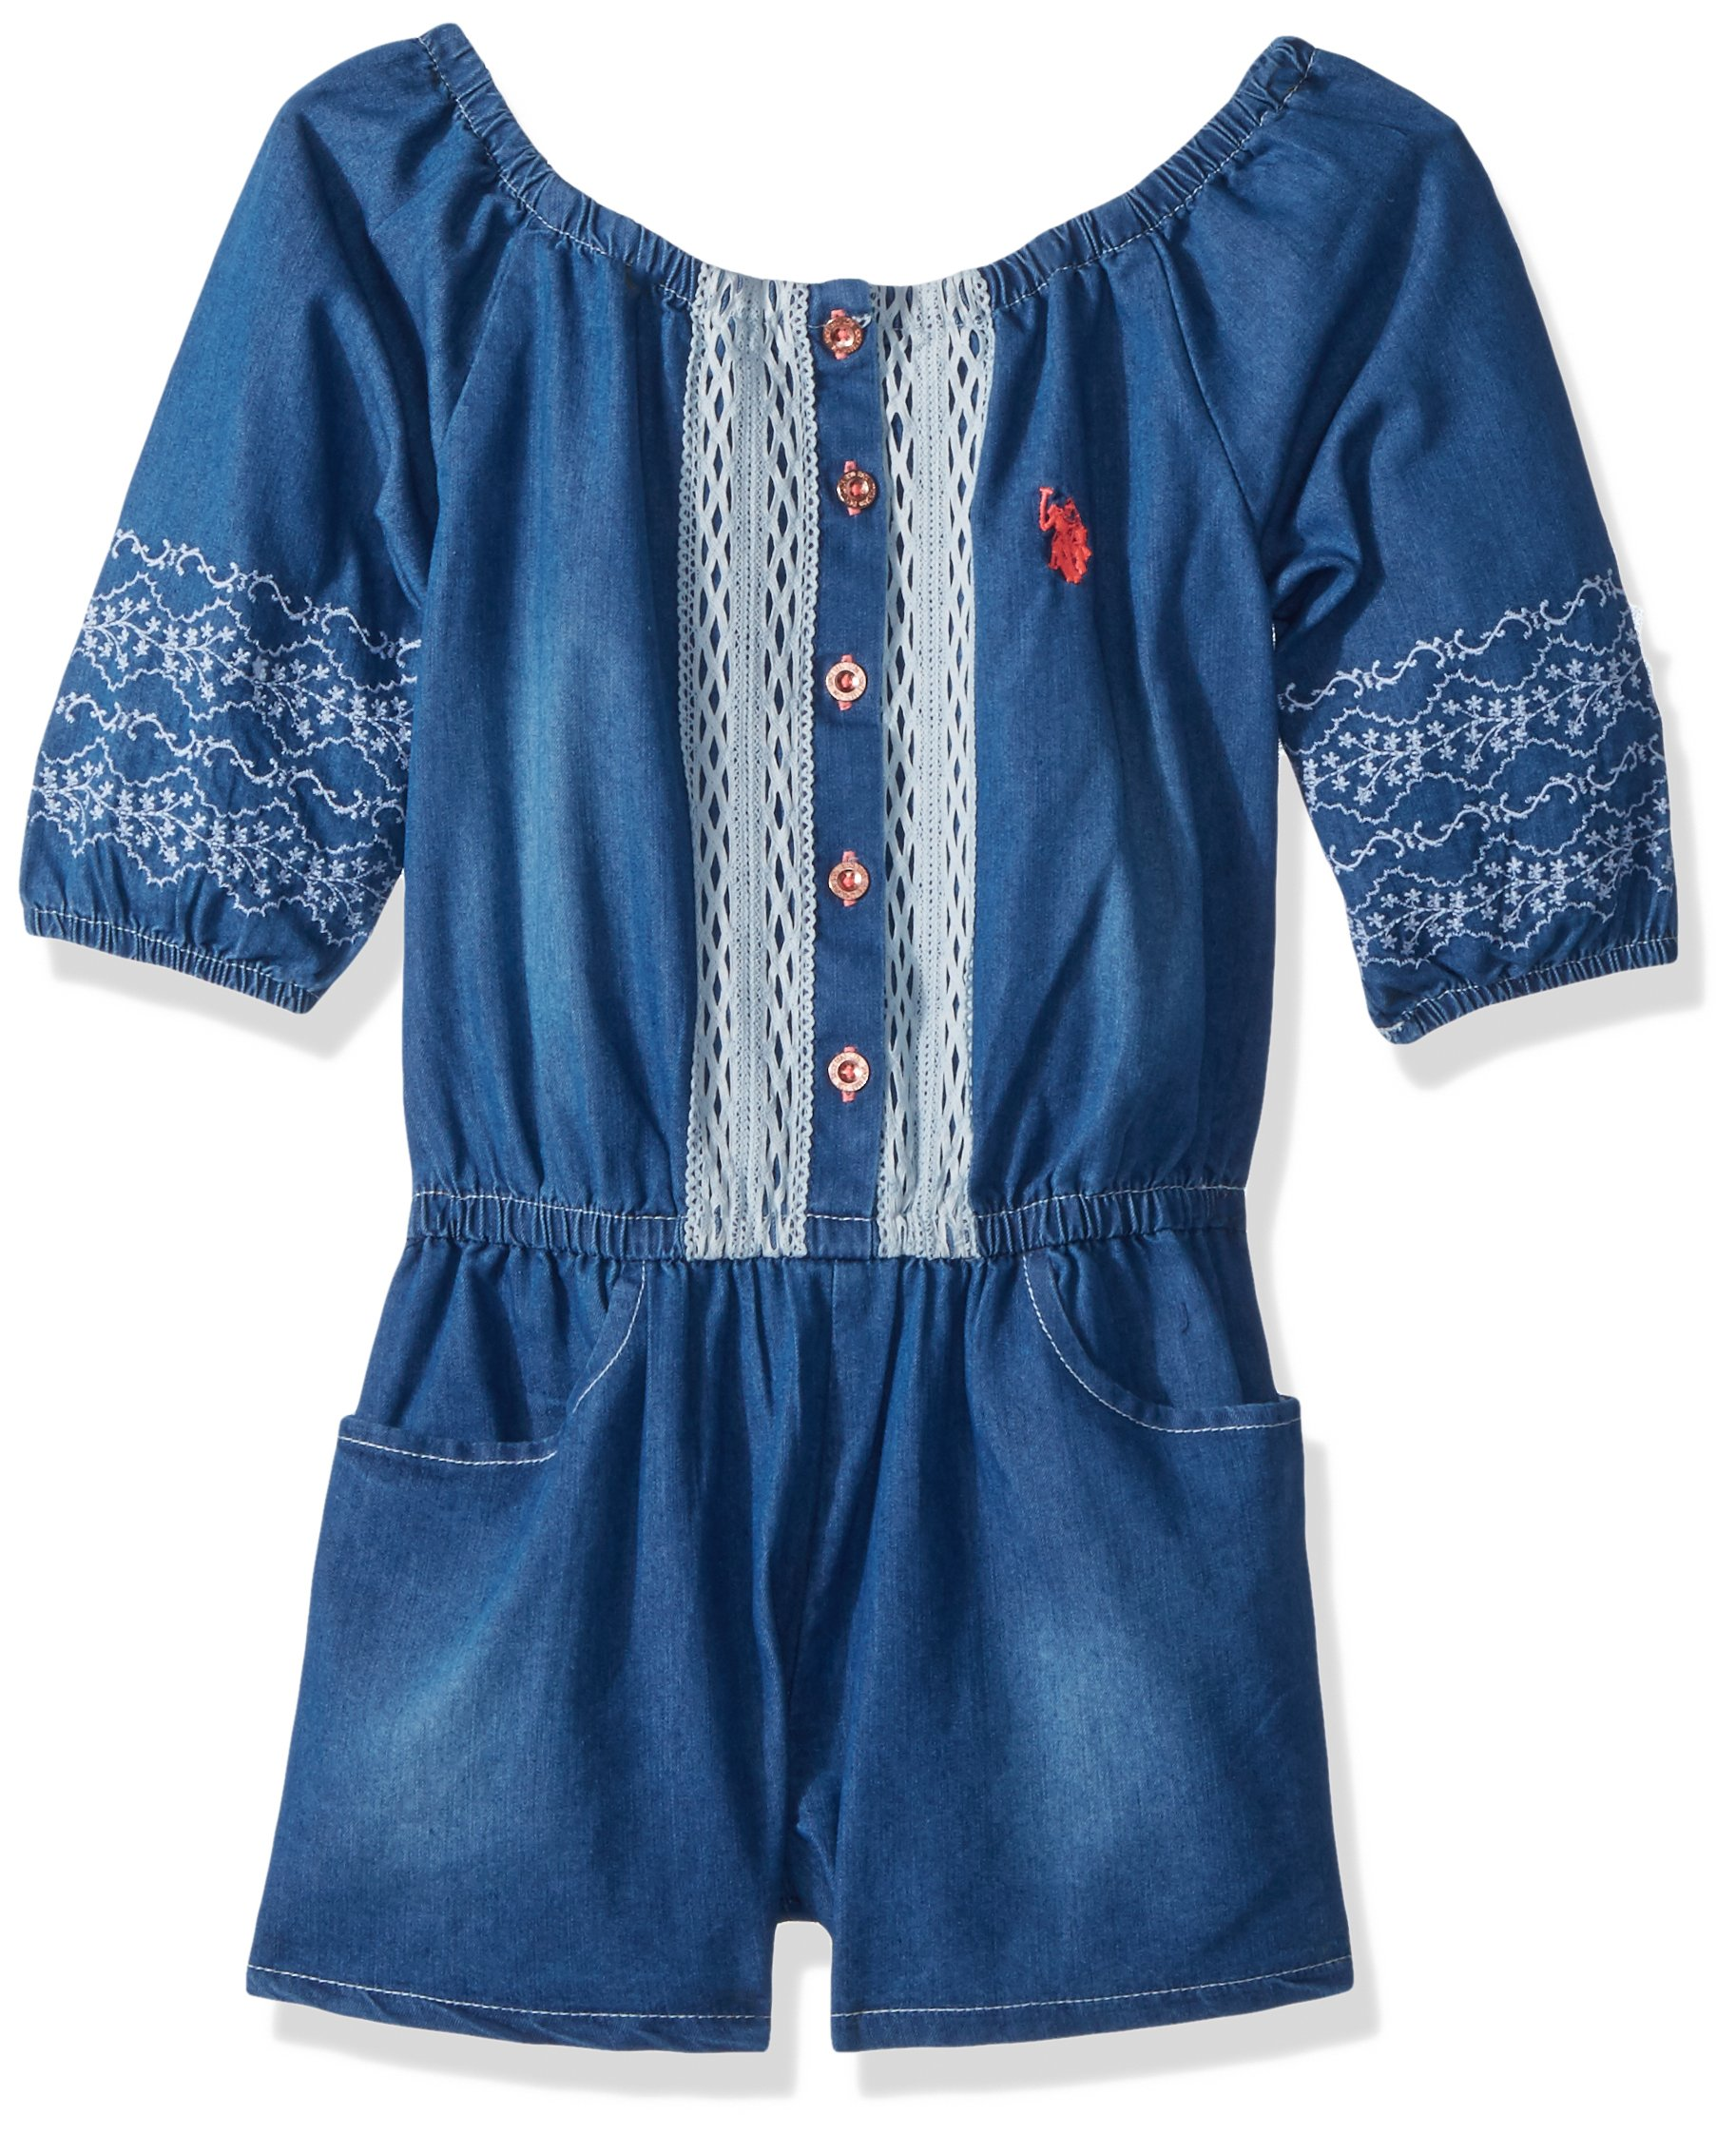 U.S. Polo Assn. Big Girls' Romper, Washed Cotton Lace Trim Medium Wash, 12